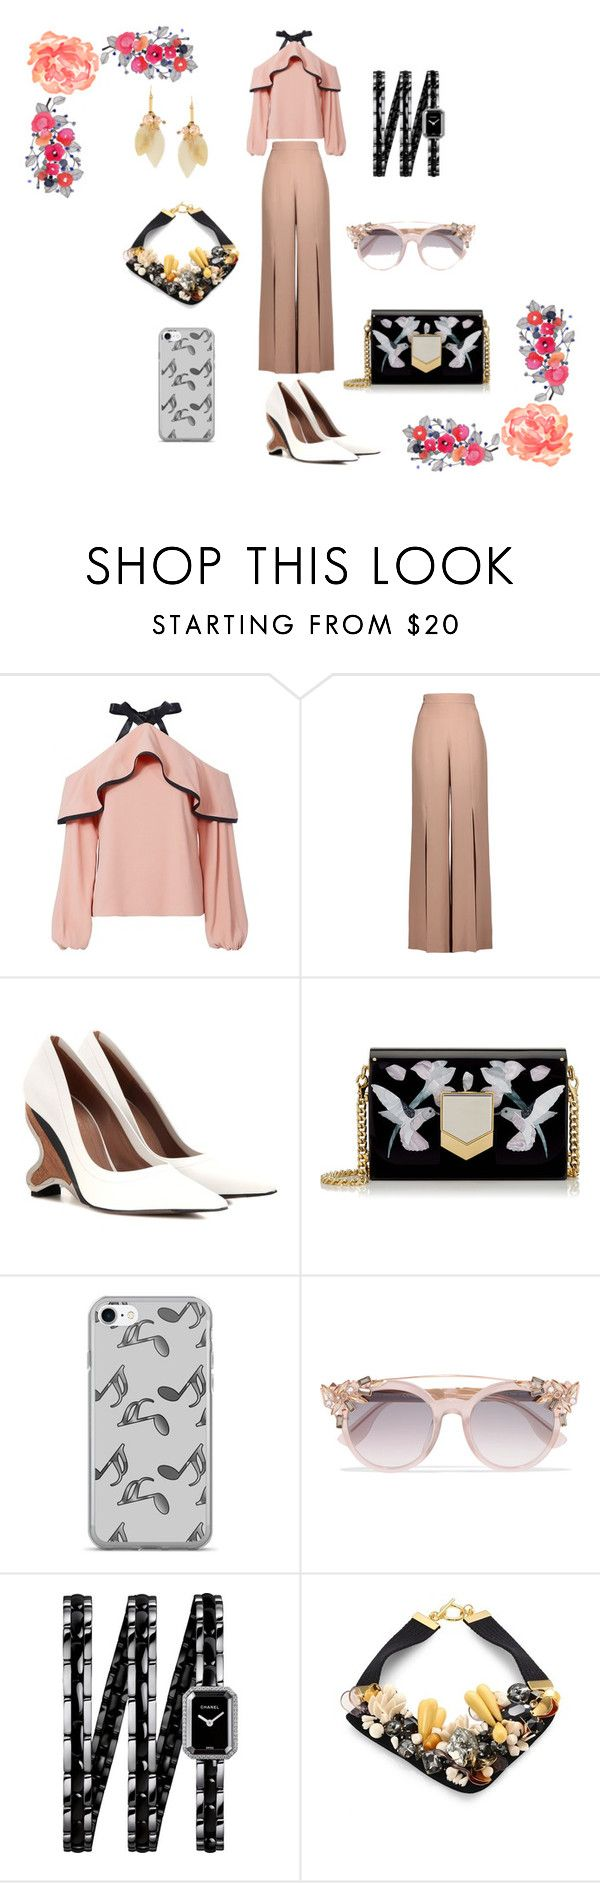 """welcoming february"" by rennyliayustika on Polyvore featuring Alexis, Cushnie Et Ochs, Marni, Jimmy Choo, Music Notes and Chanel"